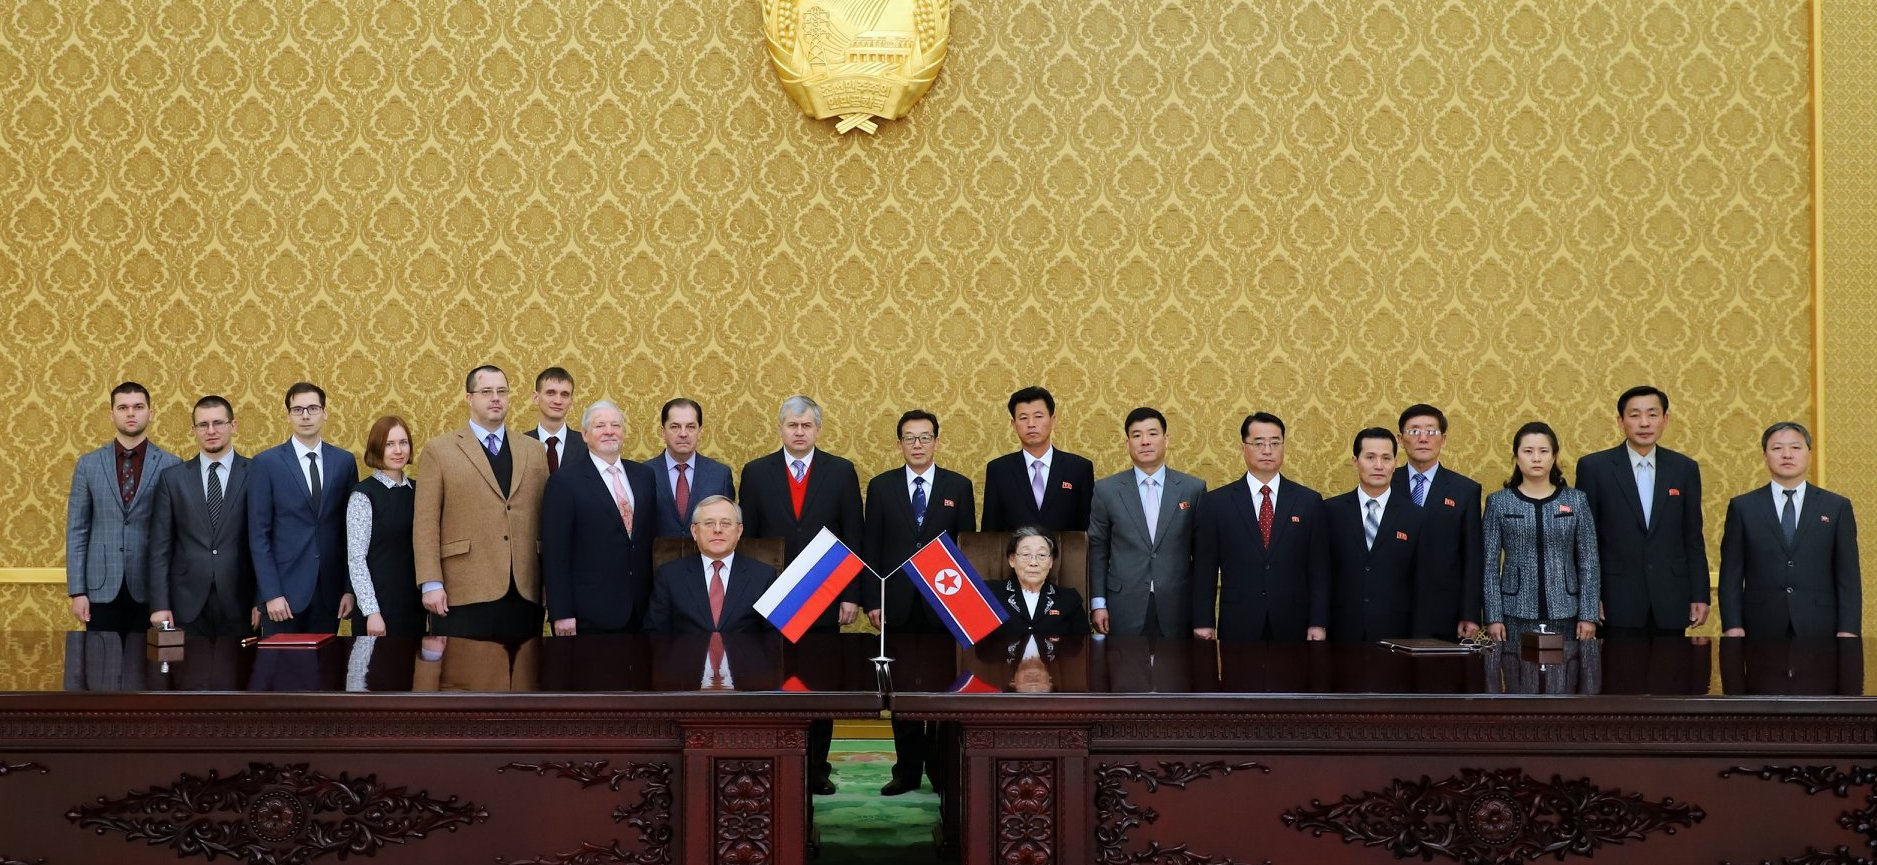 North Korea, Russia sign cultural cooperation agreement in Pyongyang: embassy